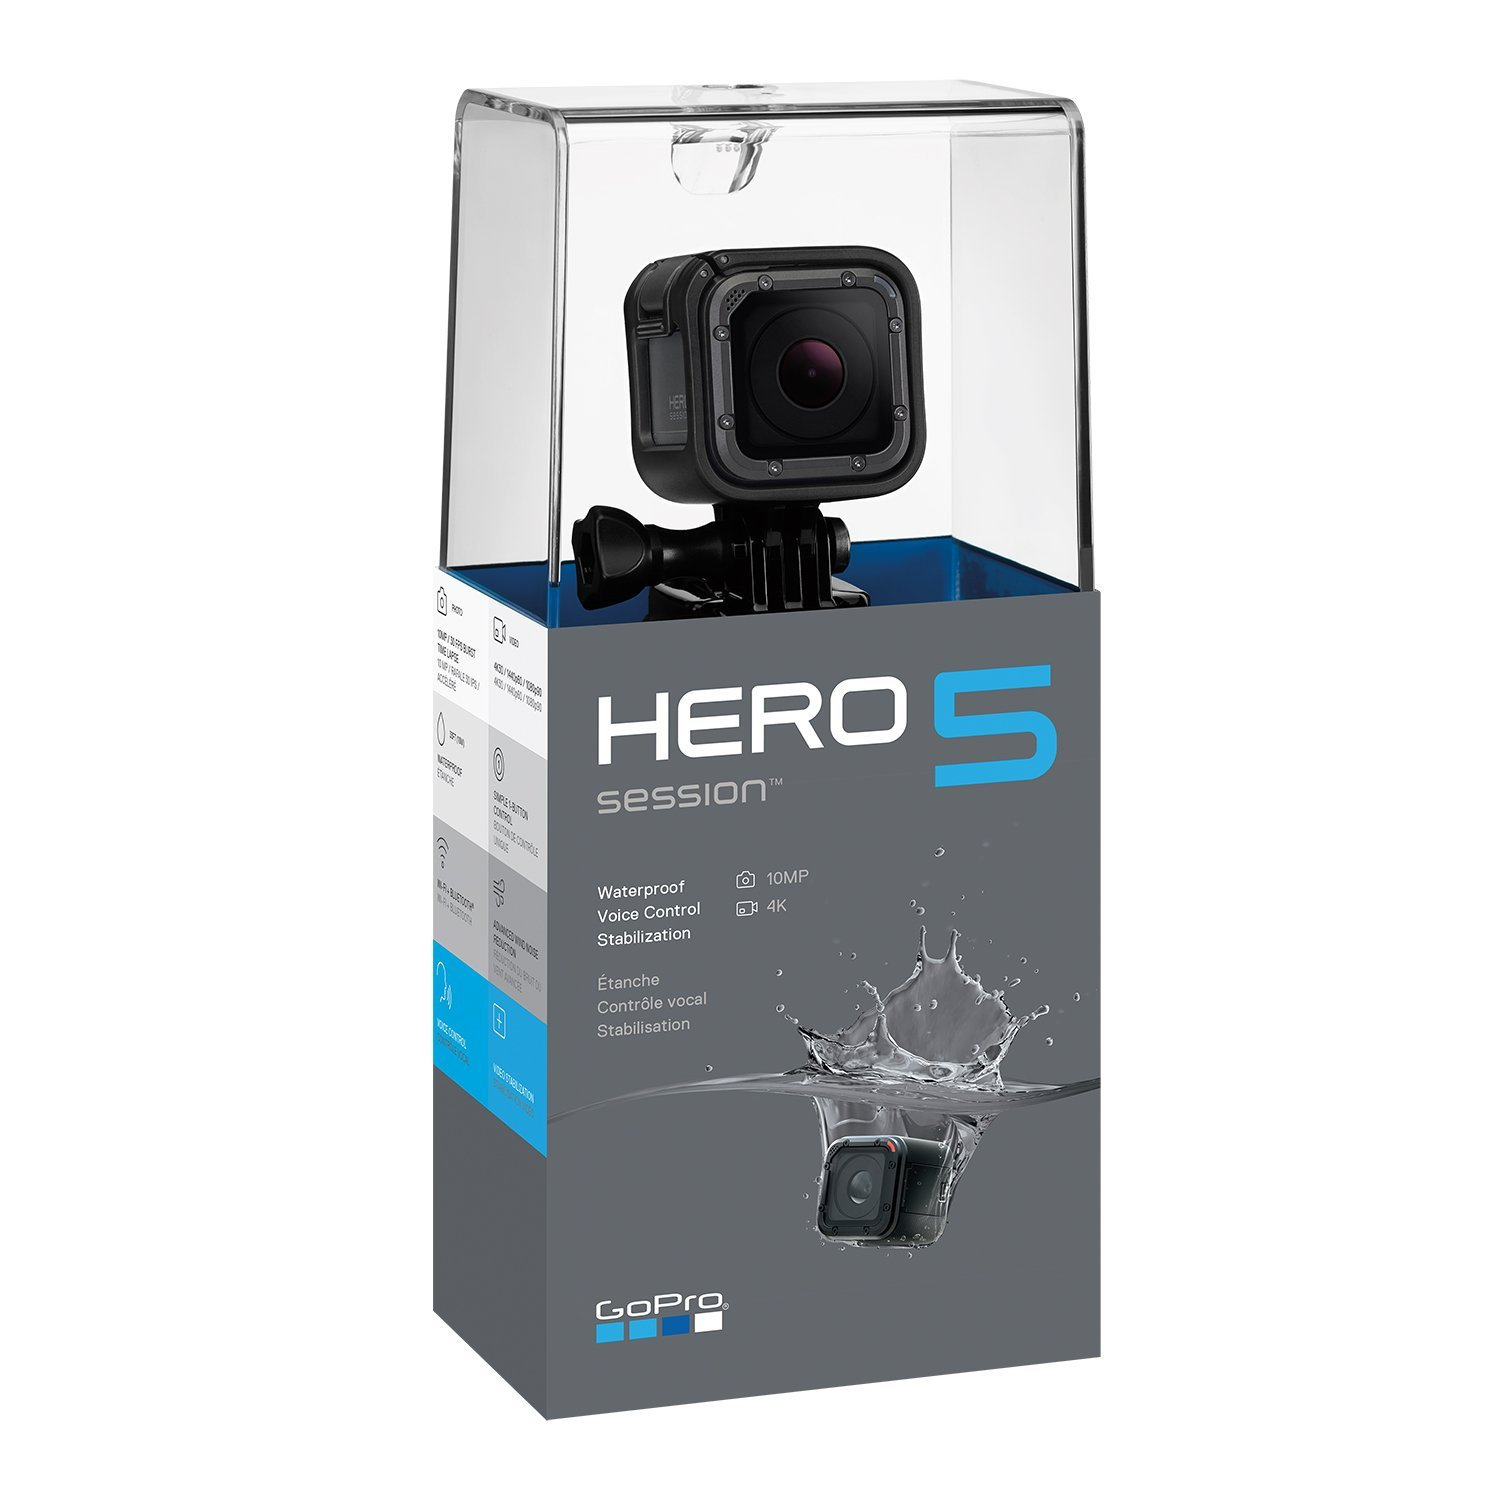 The GoPro HERO5 Session travel product recommended by Maria on Lifney.